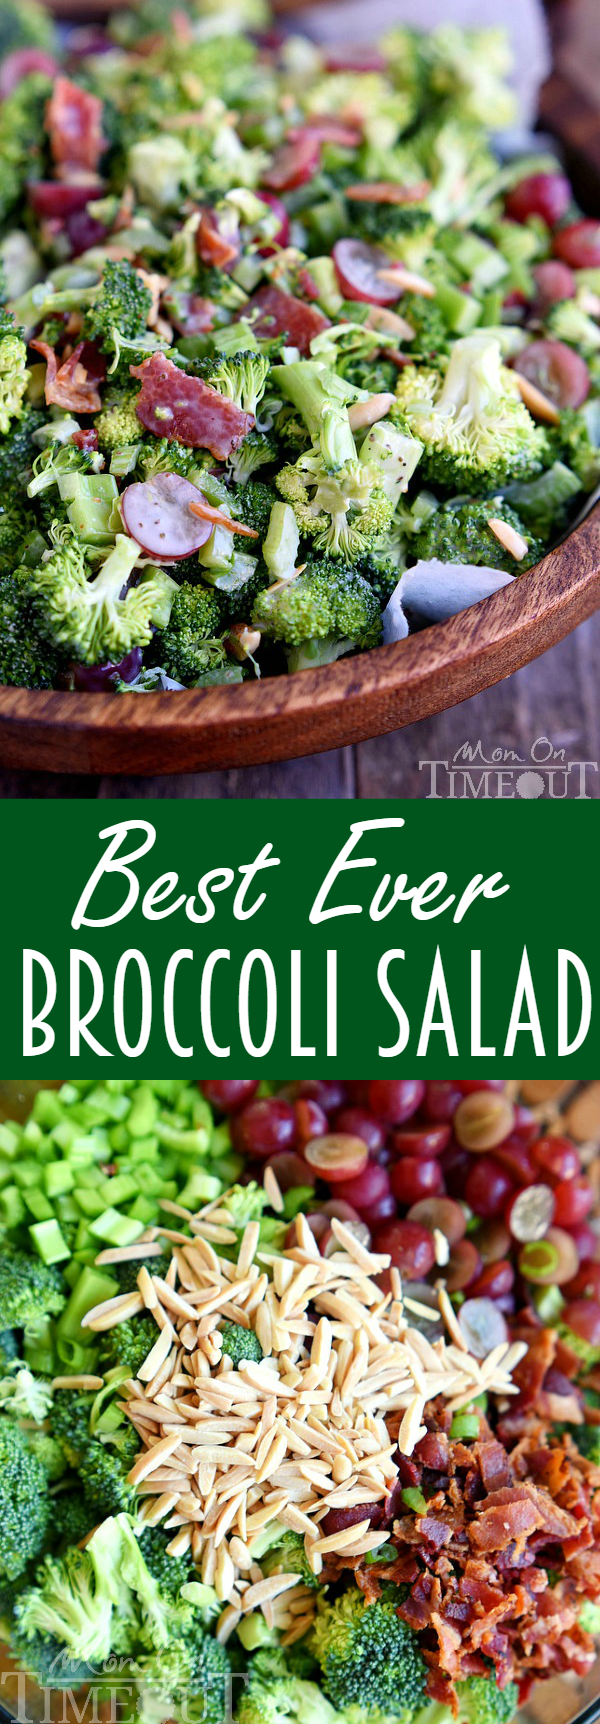 best-broccoli-salad-recipe-collage